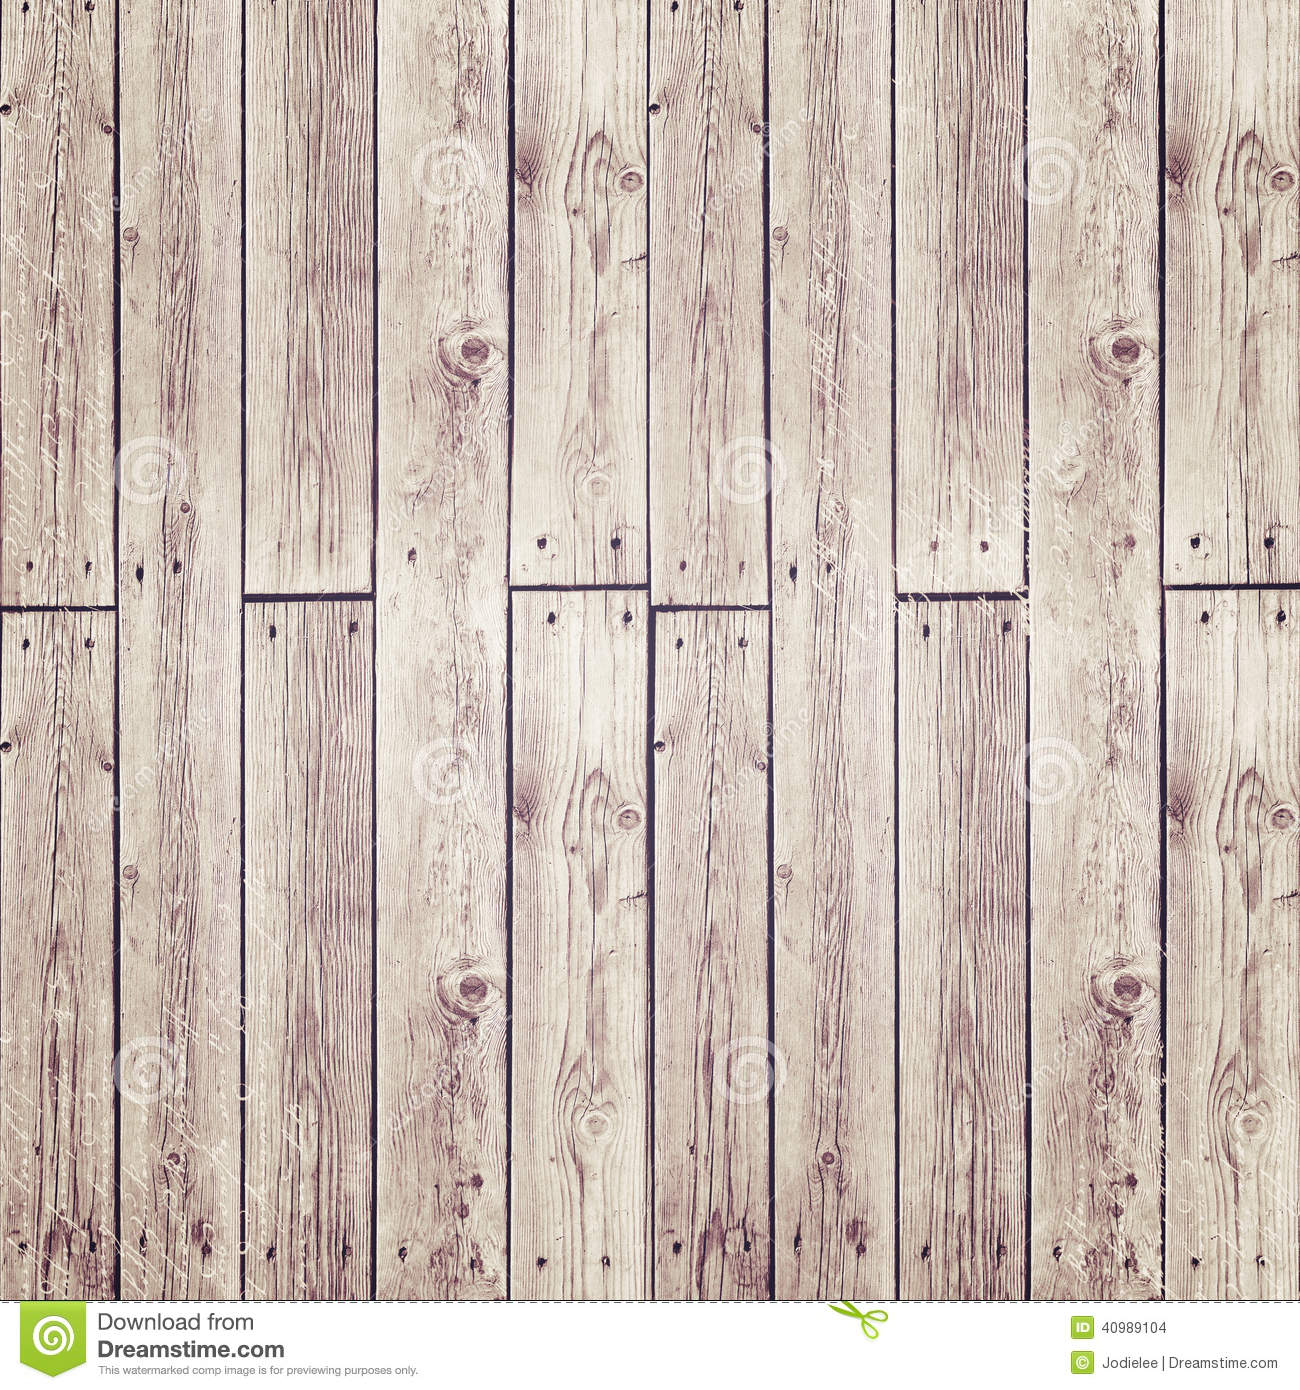 Old wooden boards as background - Background Boards Distressed Old Planks Weathered Wooden